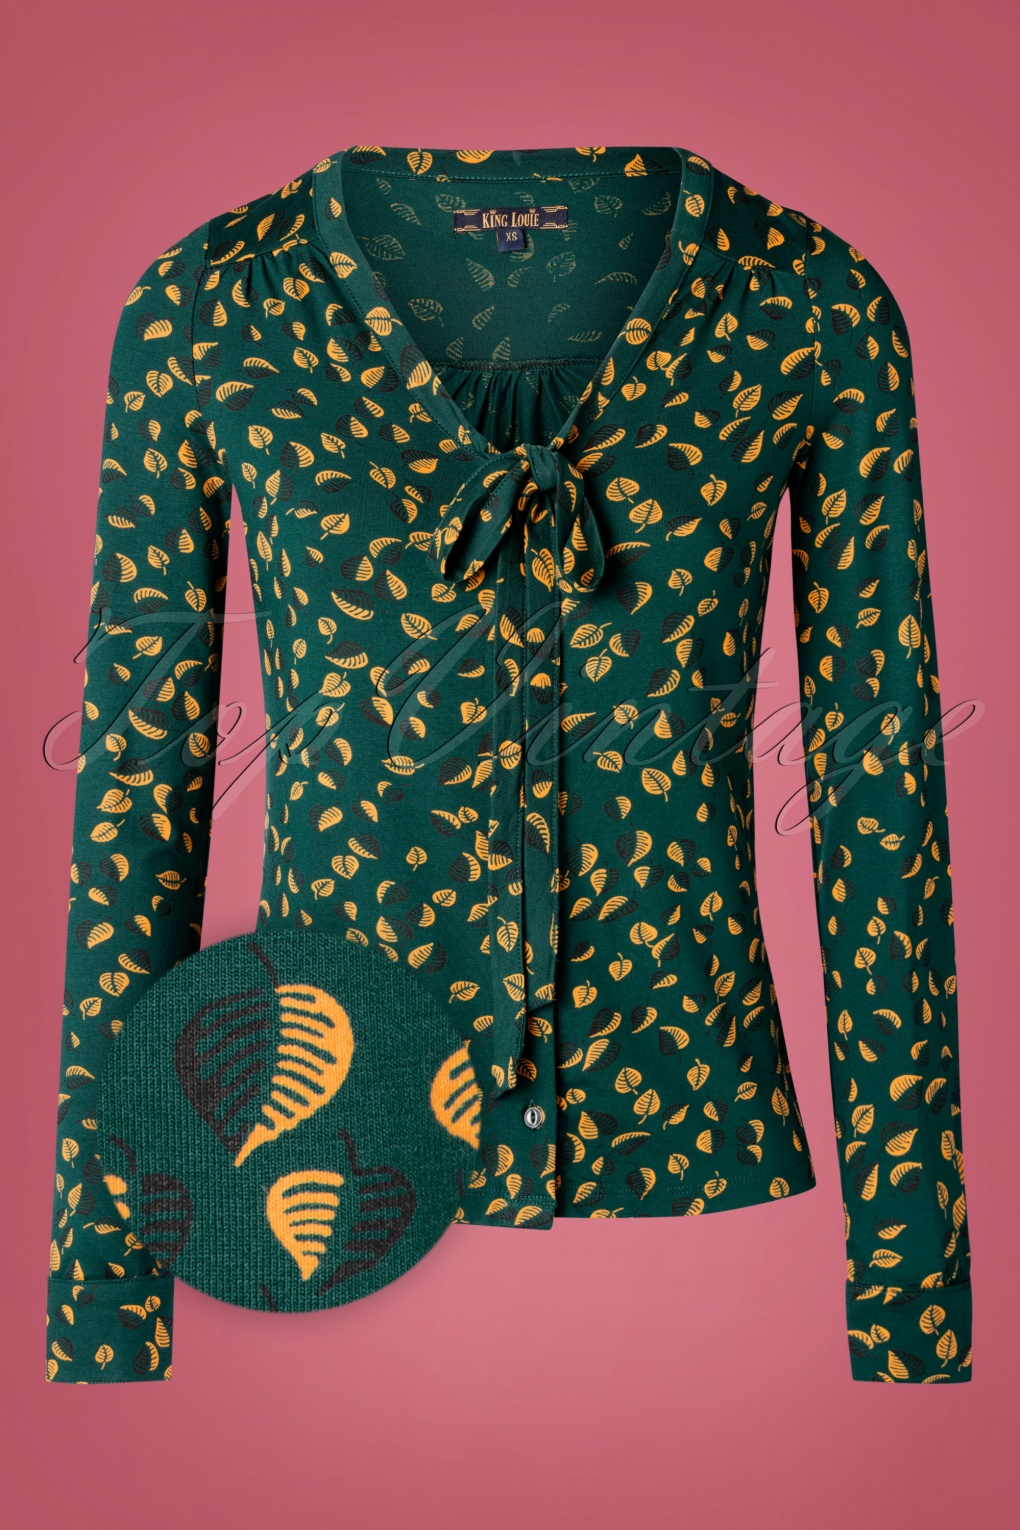 1960s Style Dresses, Clothing, Shoes UK 60s Picallily Bow Blouse in Dragonfly Green £61.22 AT vintagedancer.com